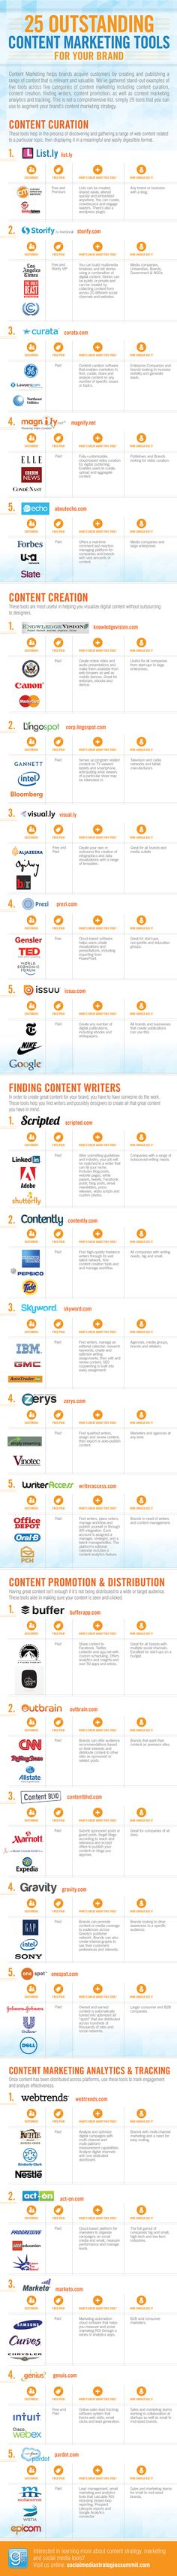 Content Marketing Tools 25 Best Content Marketing Tools...